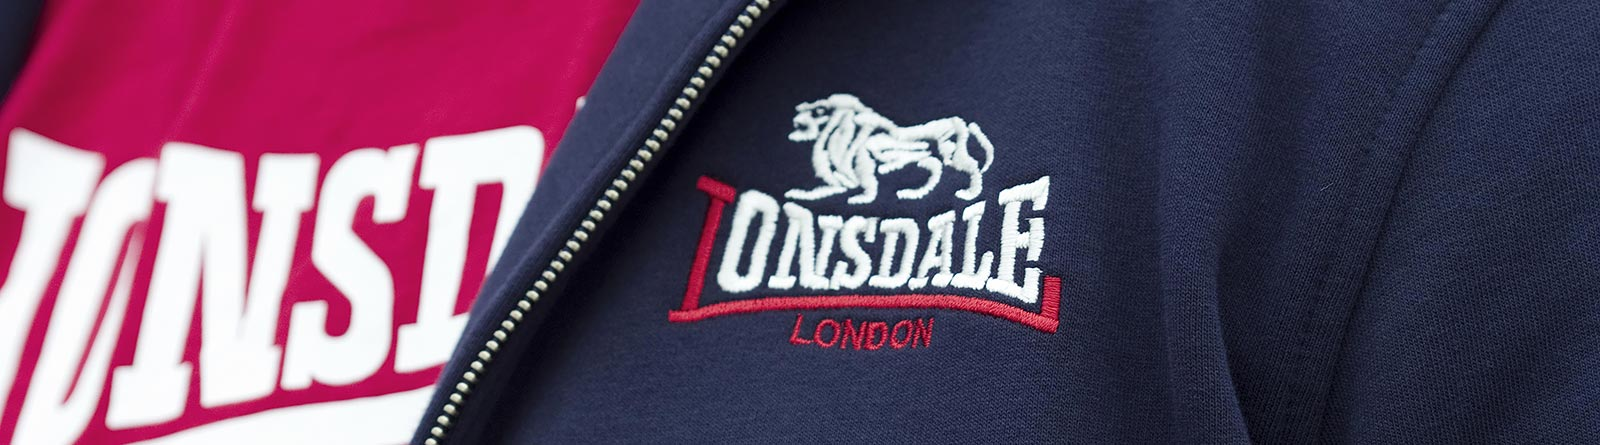 Sireeni case Lonsdale